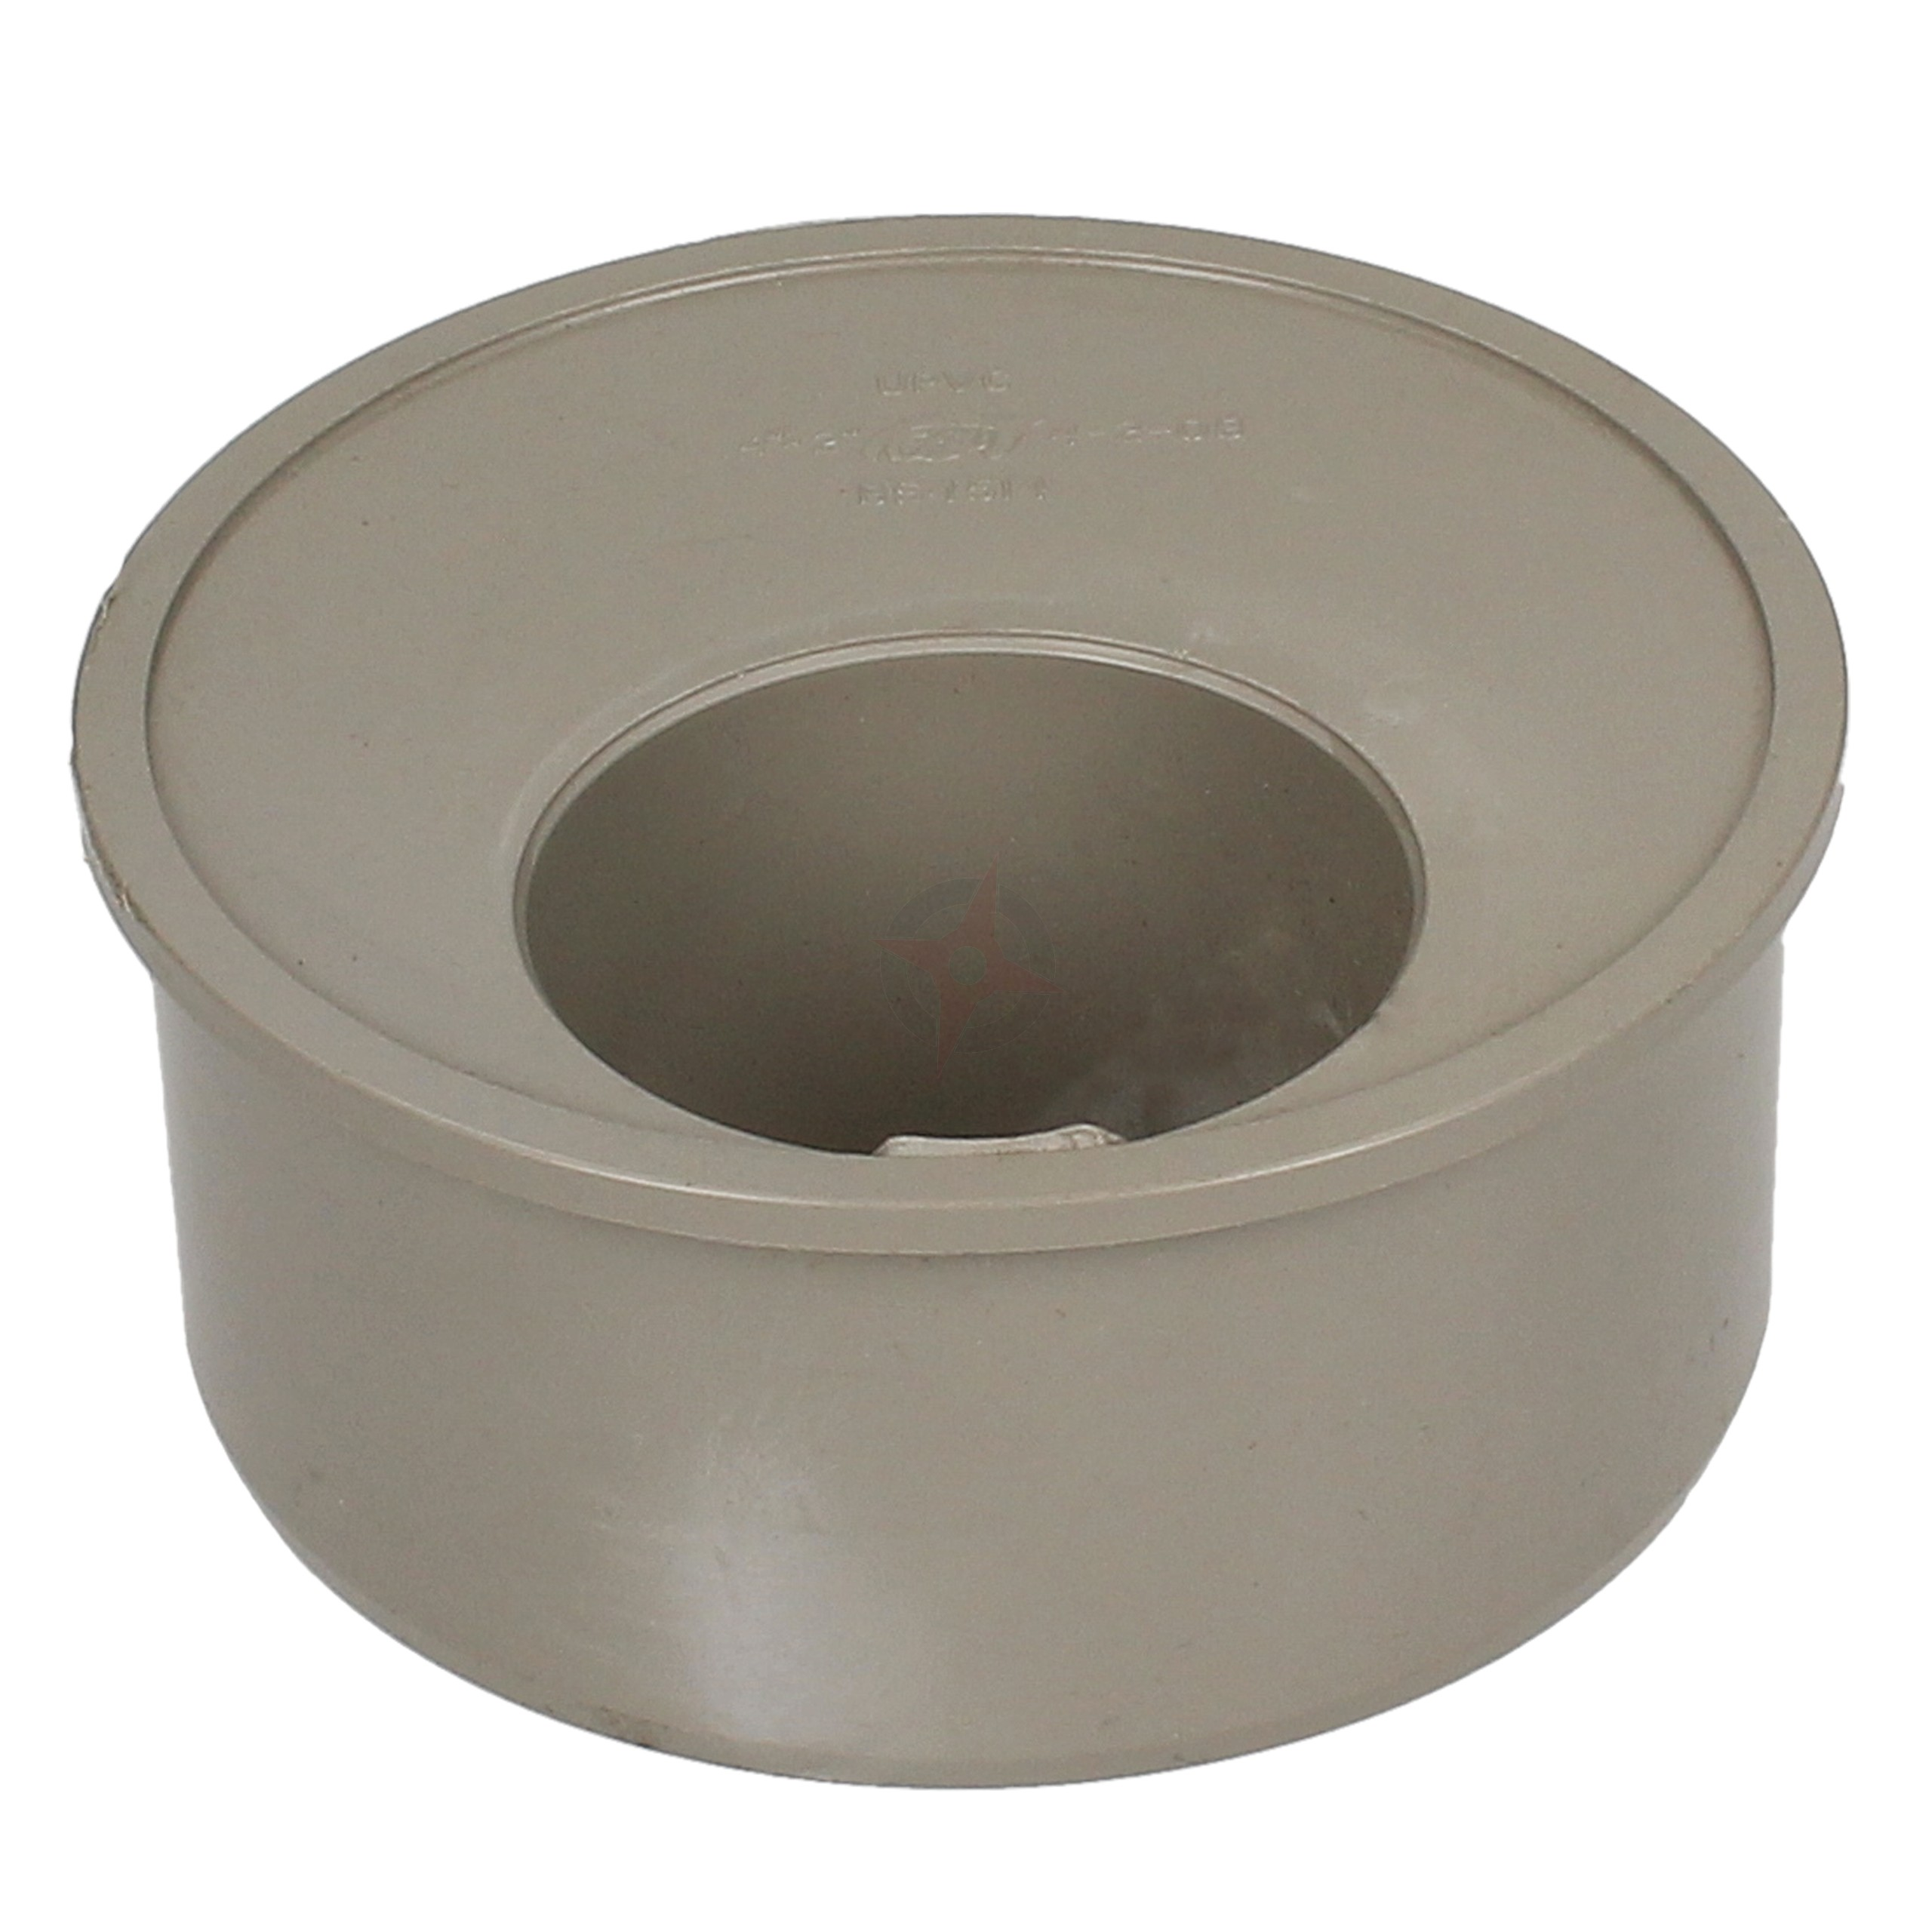 110mm x 50mm Grey Solvent Weld Soil to Waste Reducer